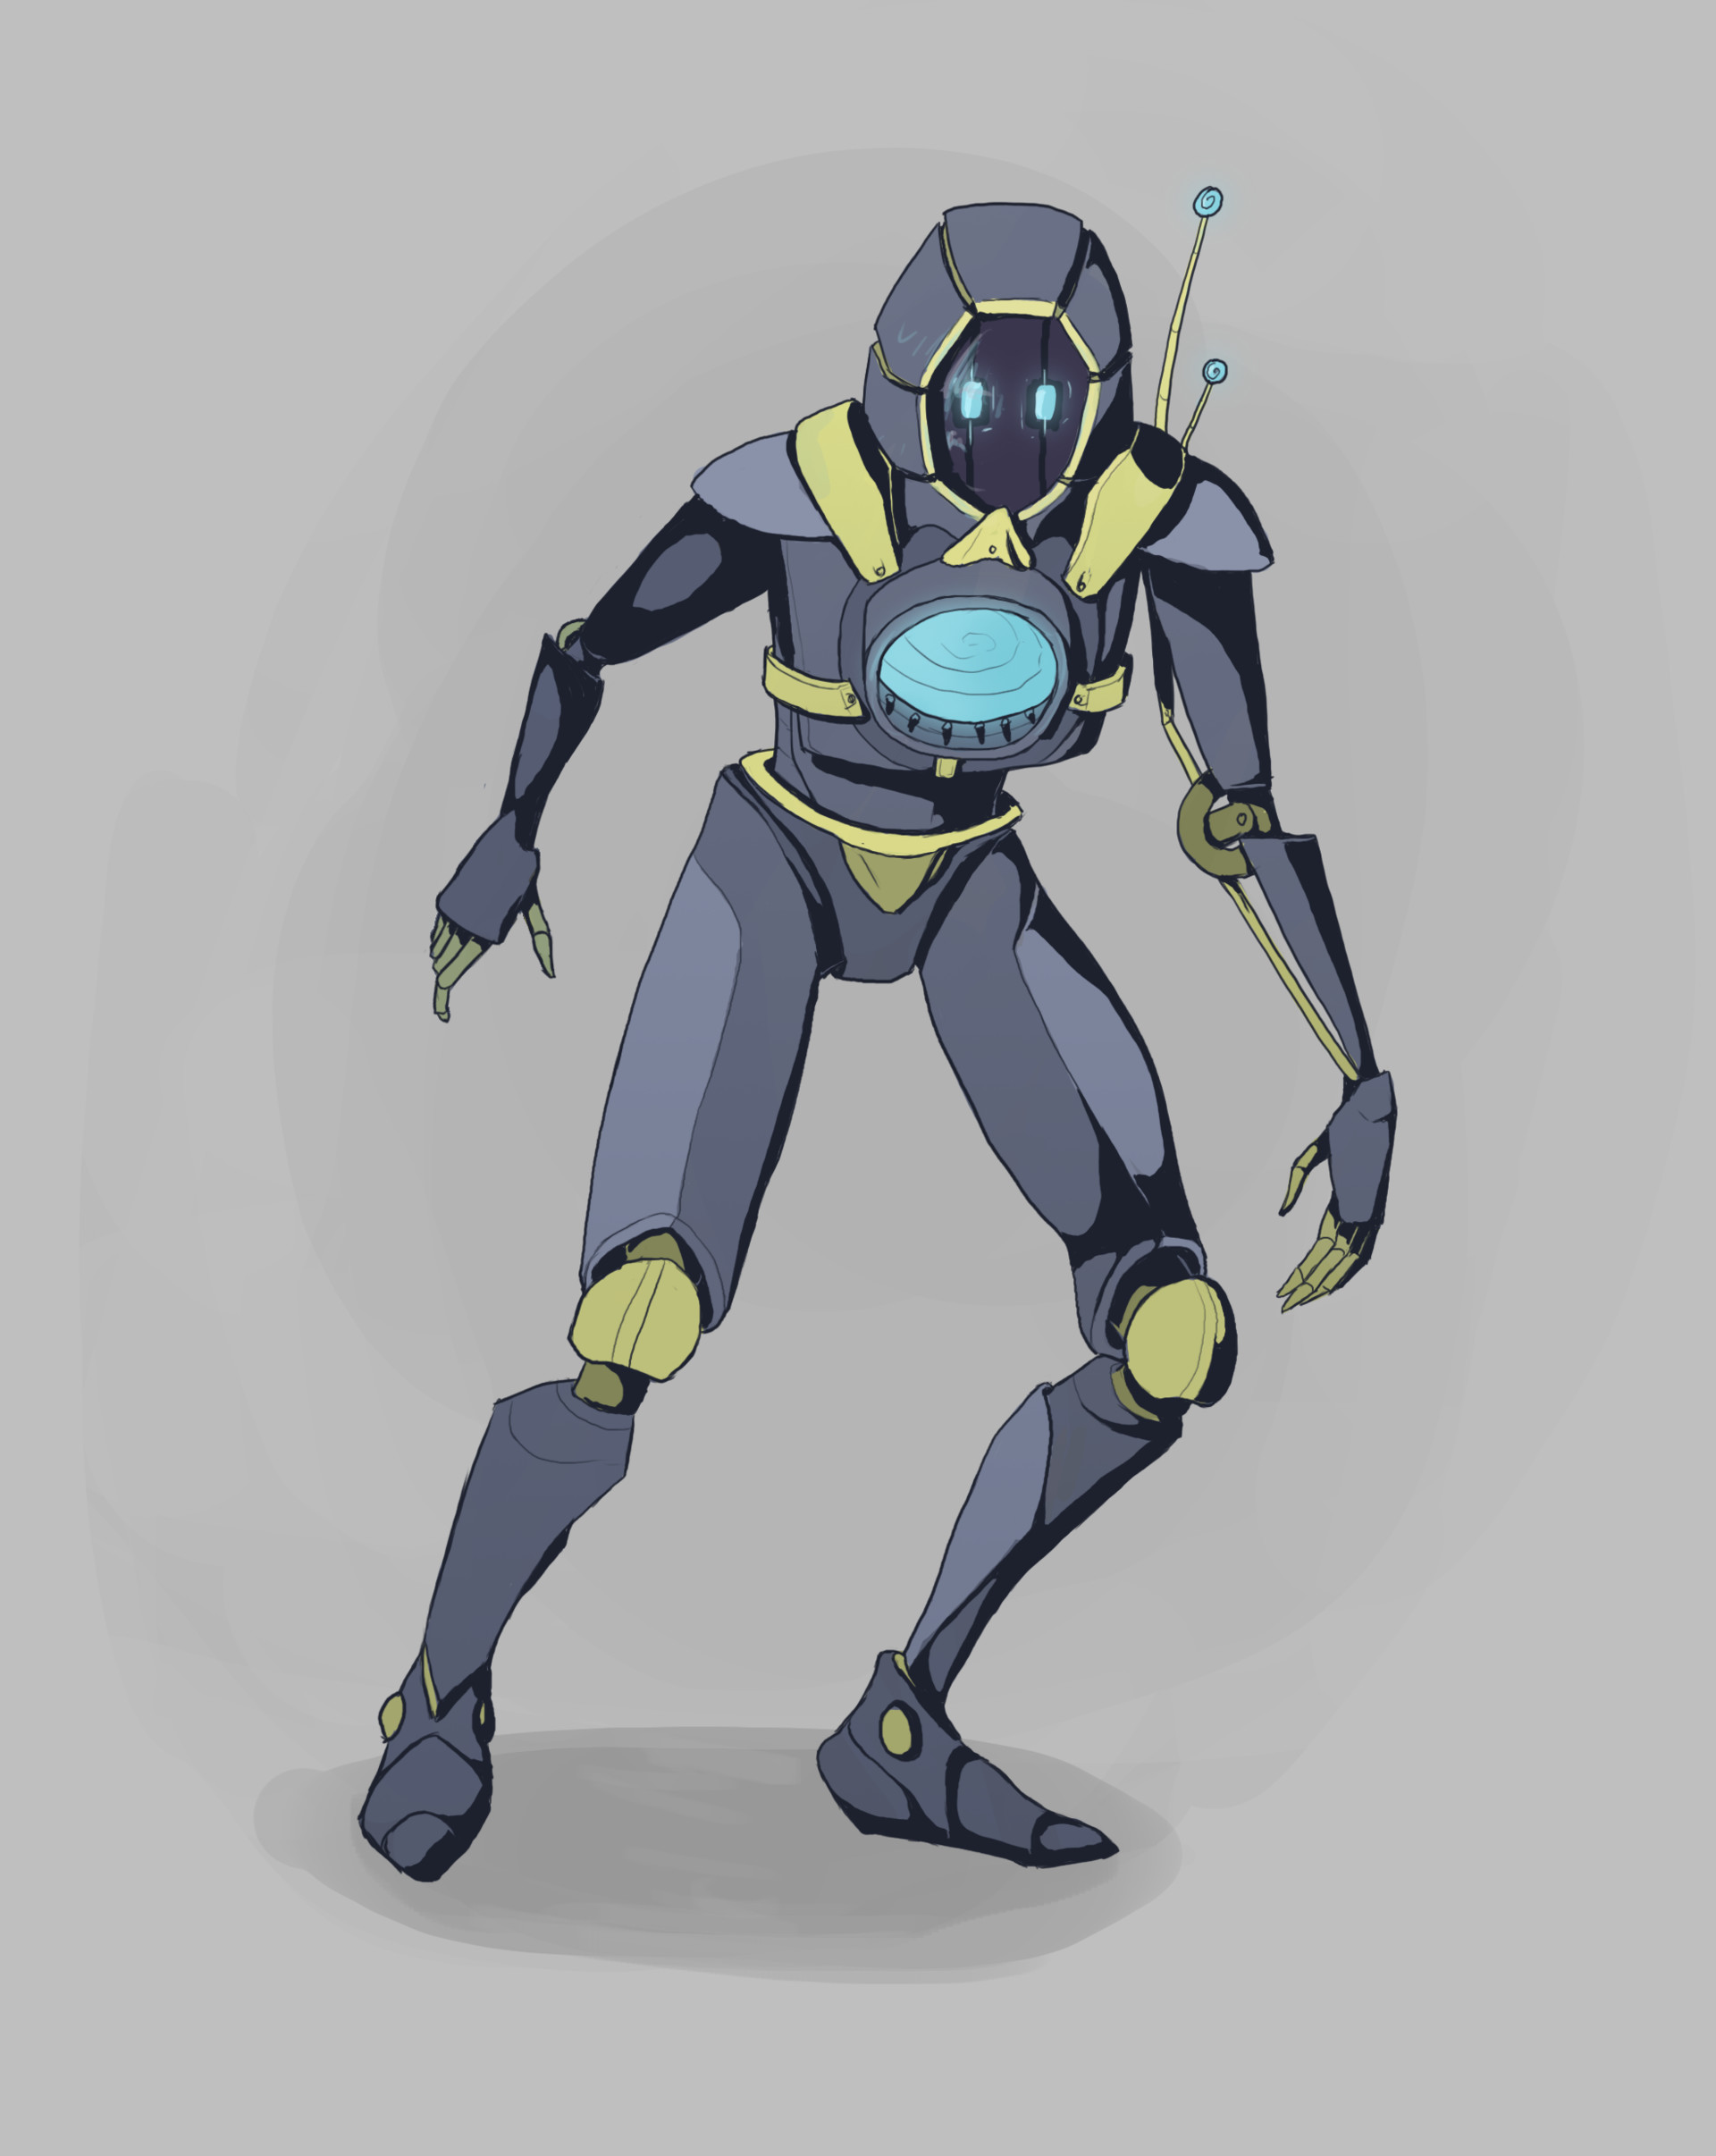 This is the Actor character in the game that is controlled by the player using a mouse and keyboard.